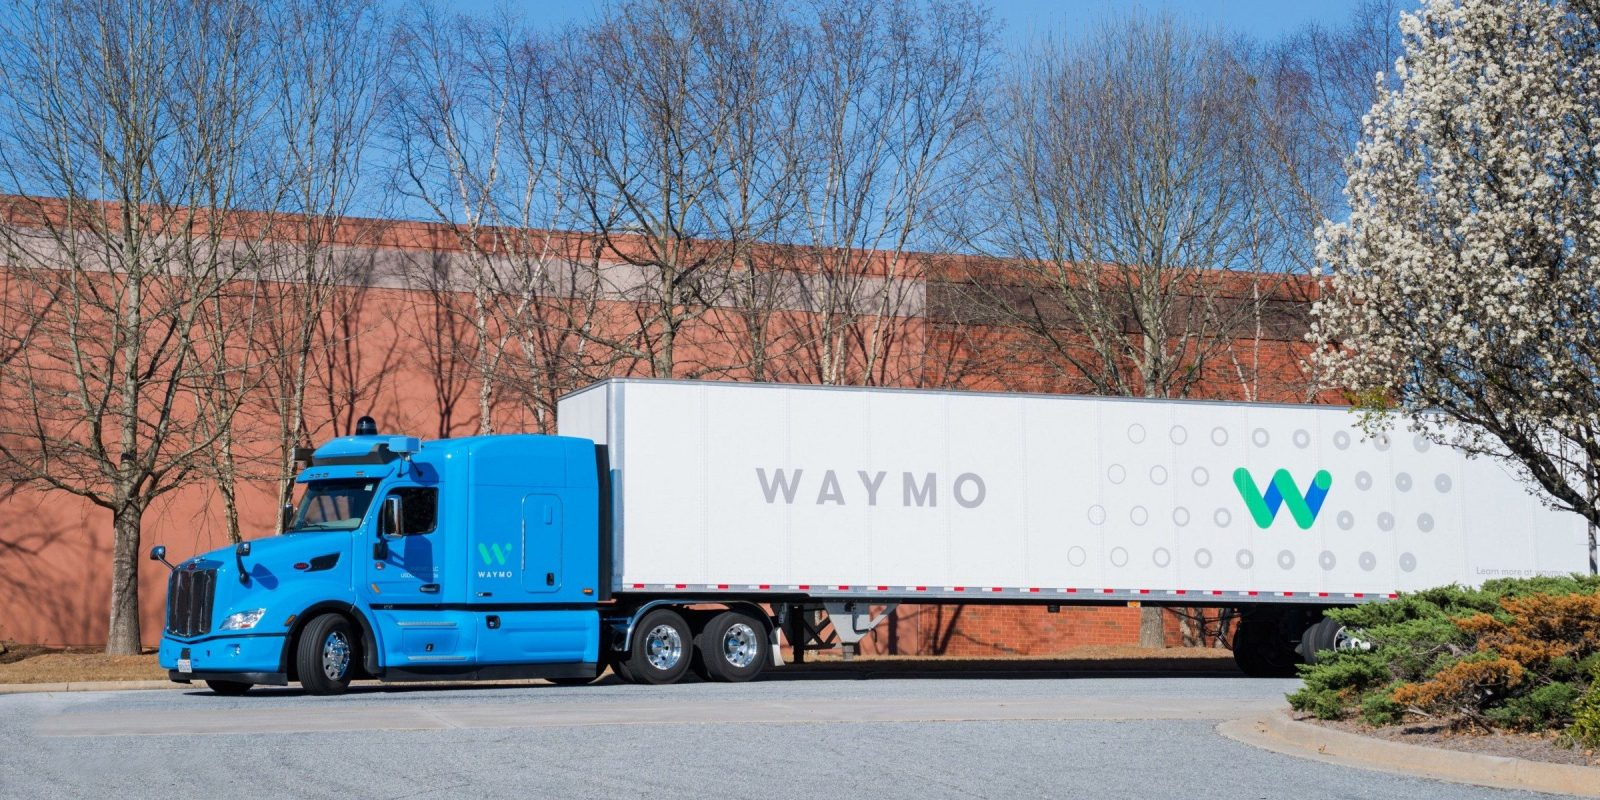 Waymo's self-driving truck team now led by ex-Anki CEO